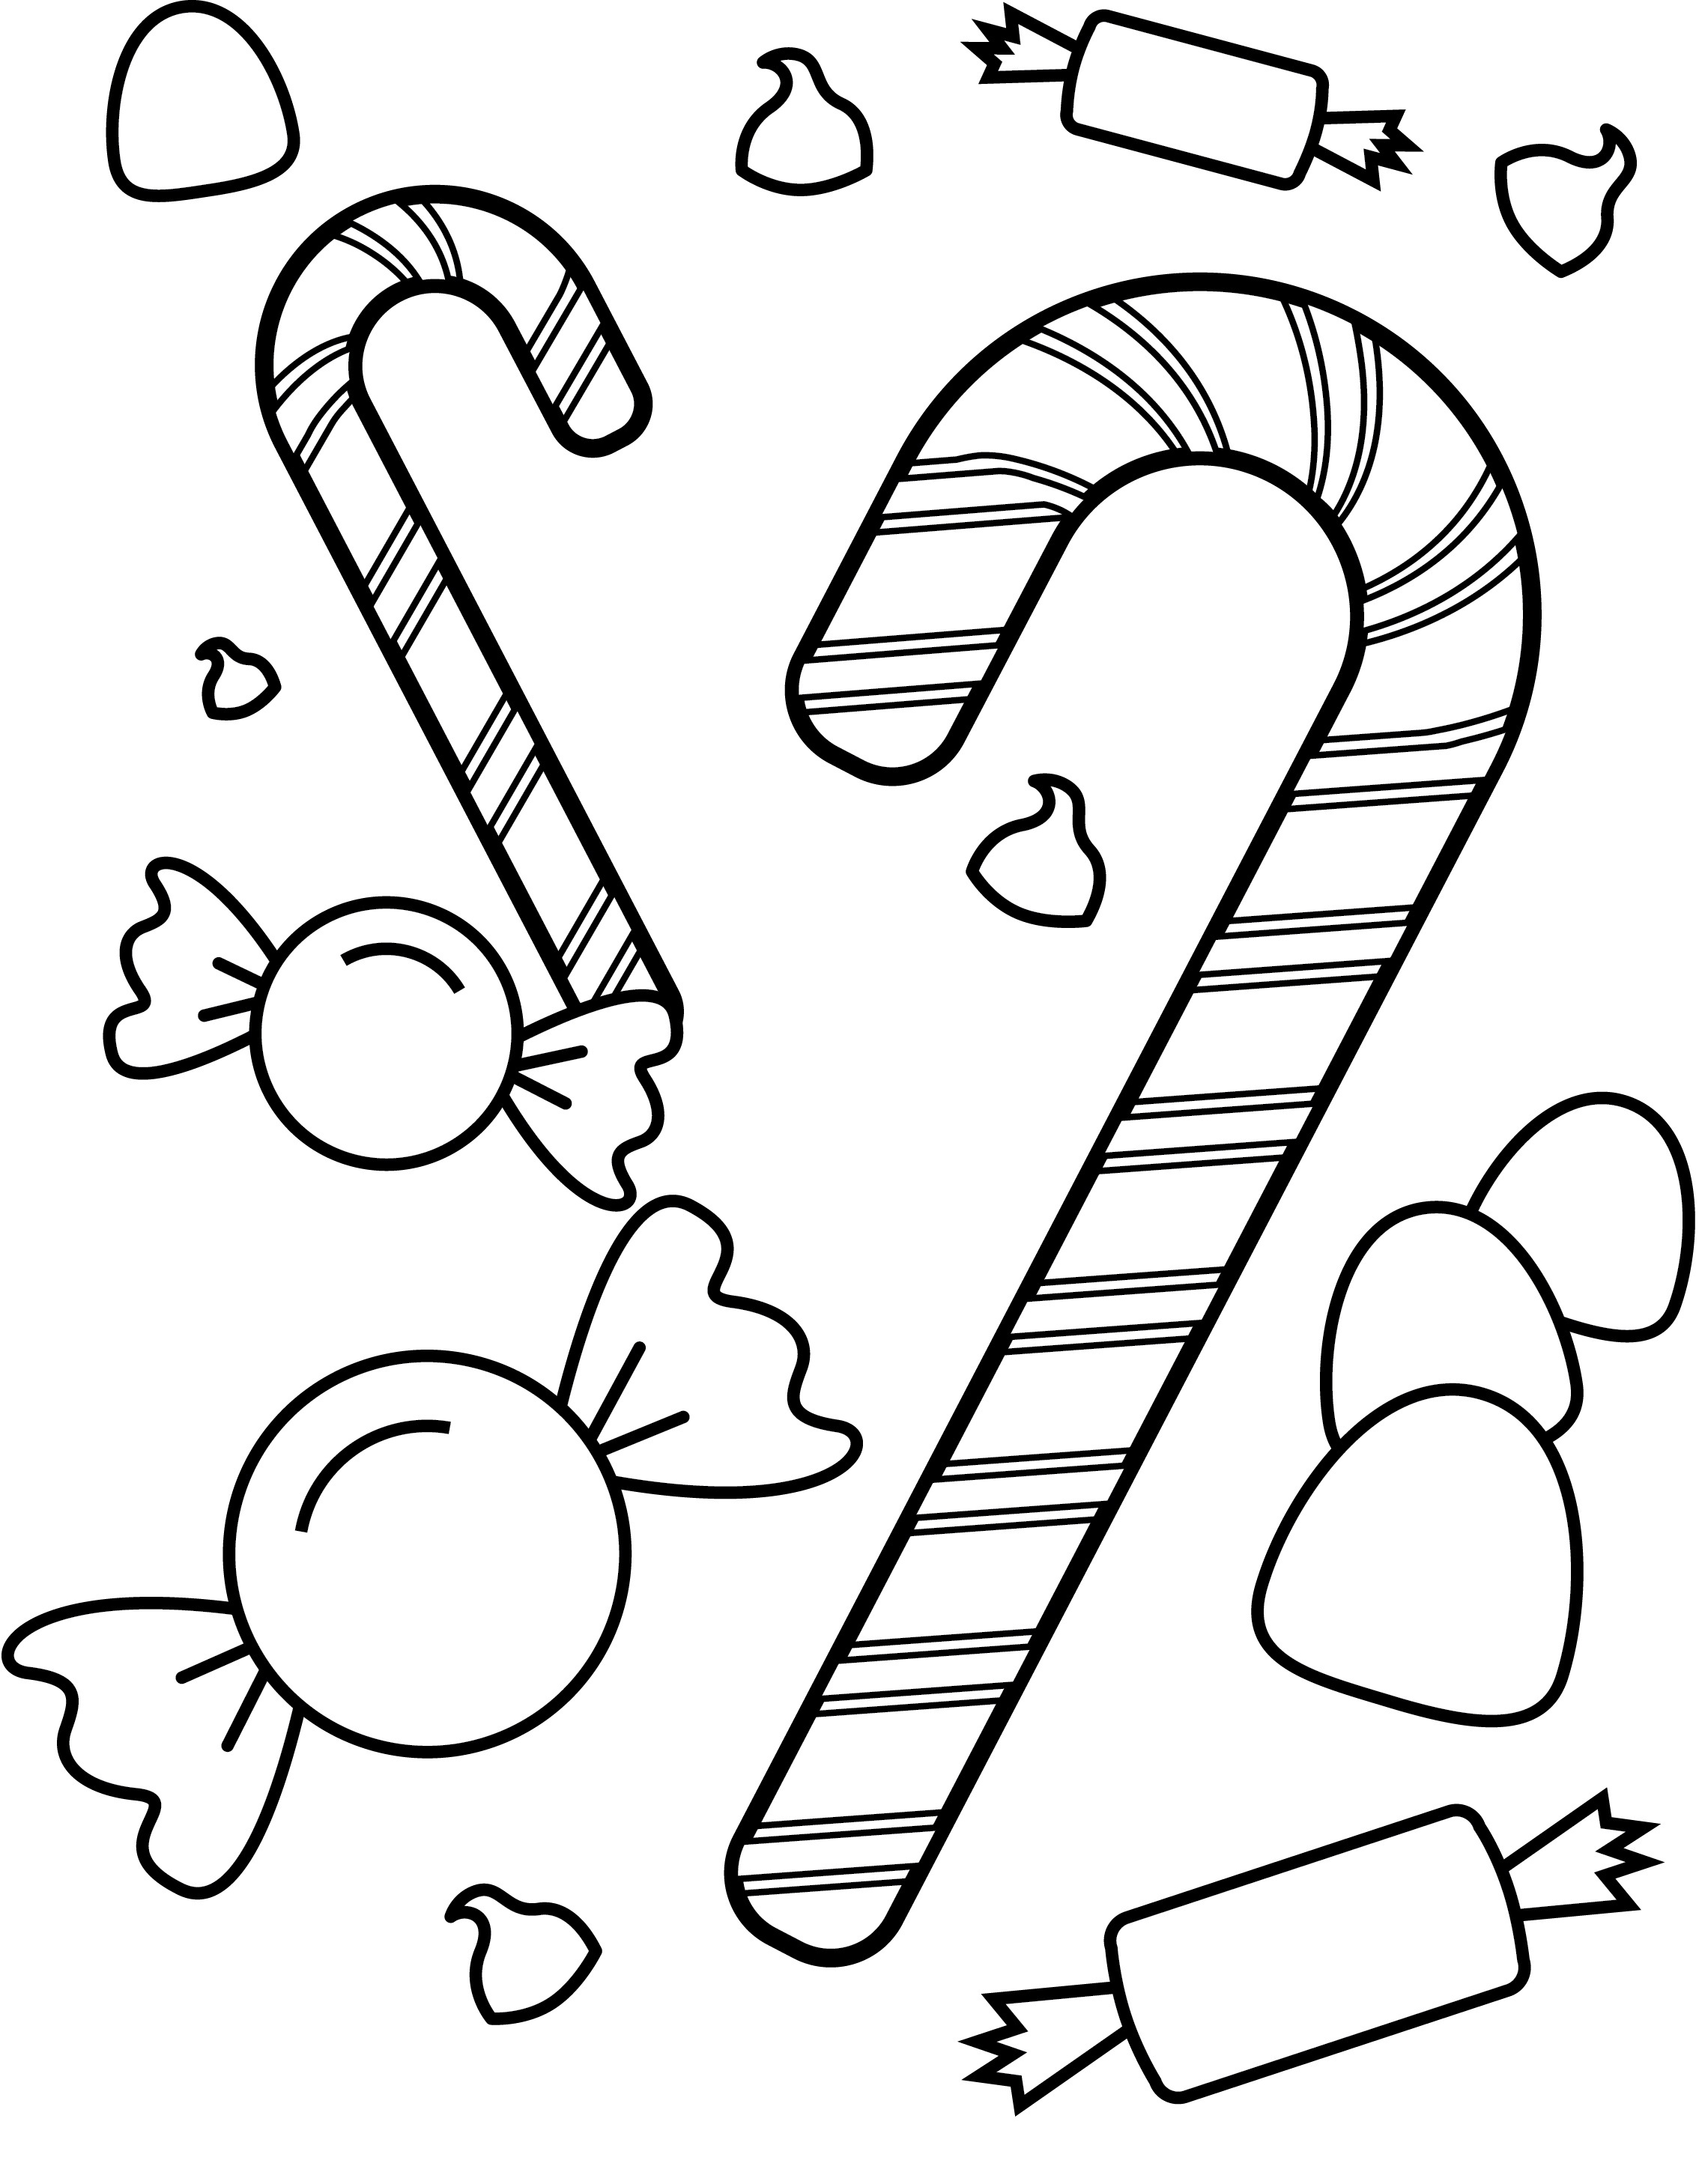 coloring pages fo candy - photo#4